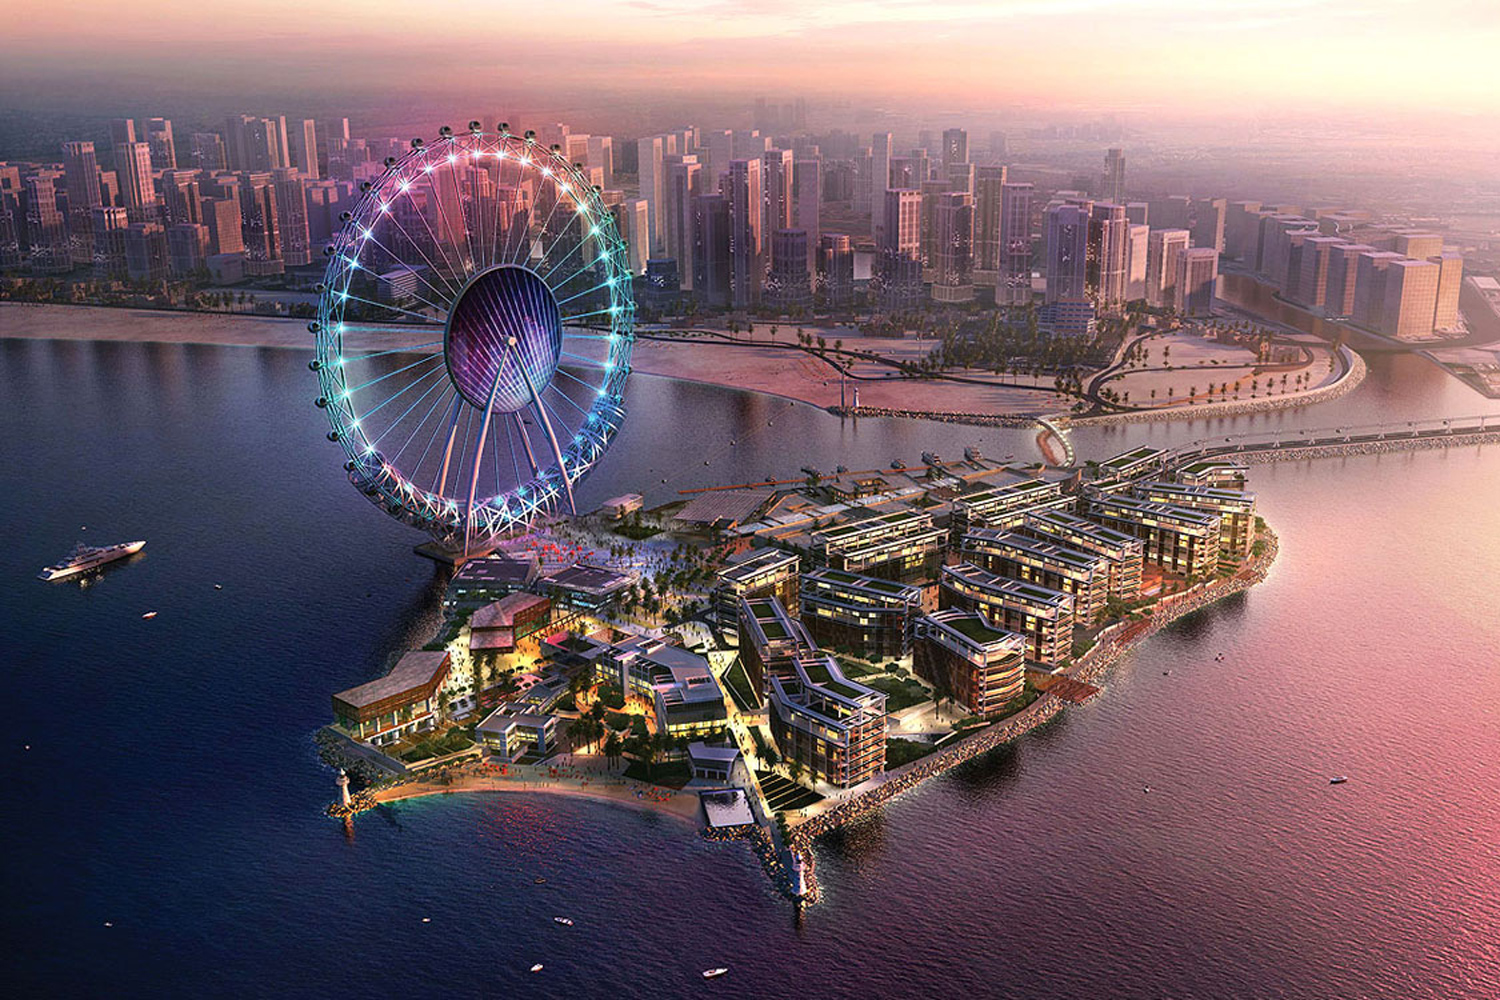 Ain Dubai Dubai, Ain Dubai – The World's Largest Ferris Wheel